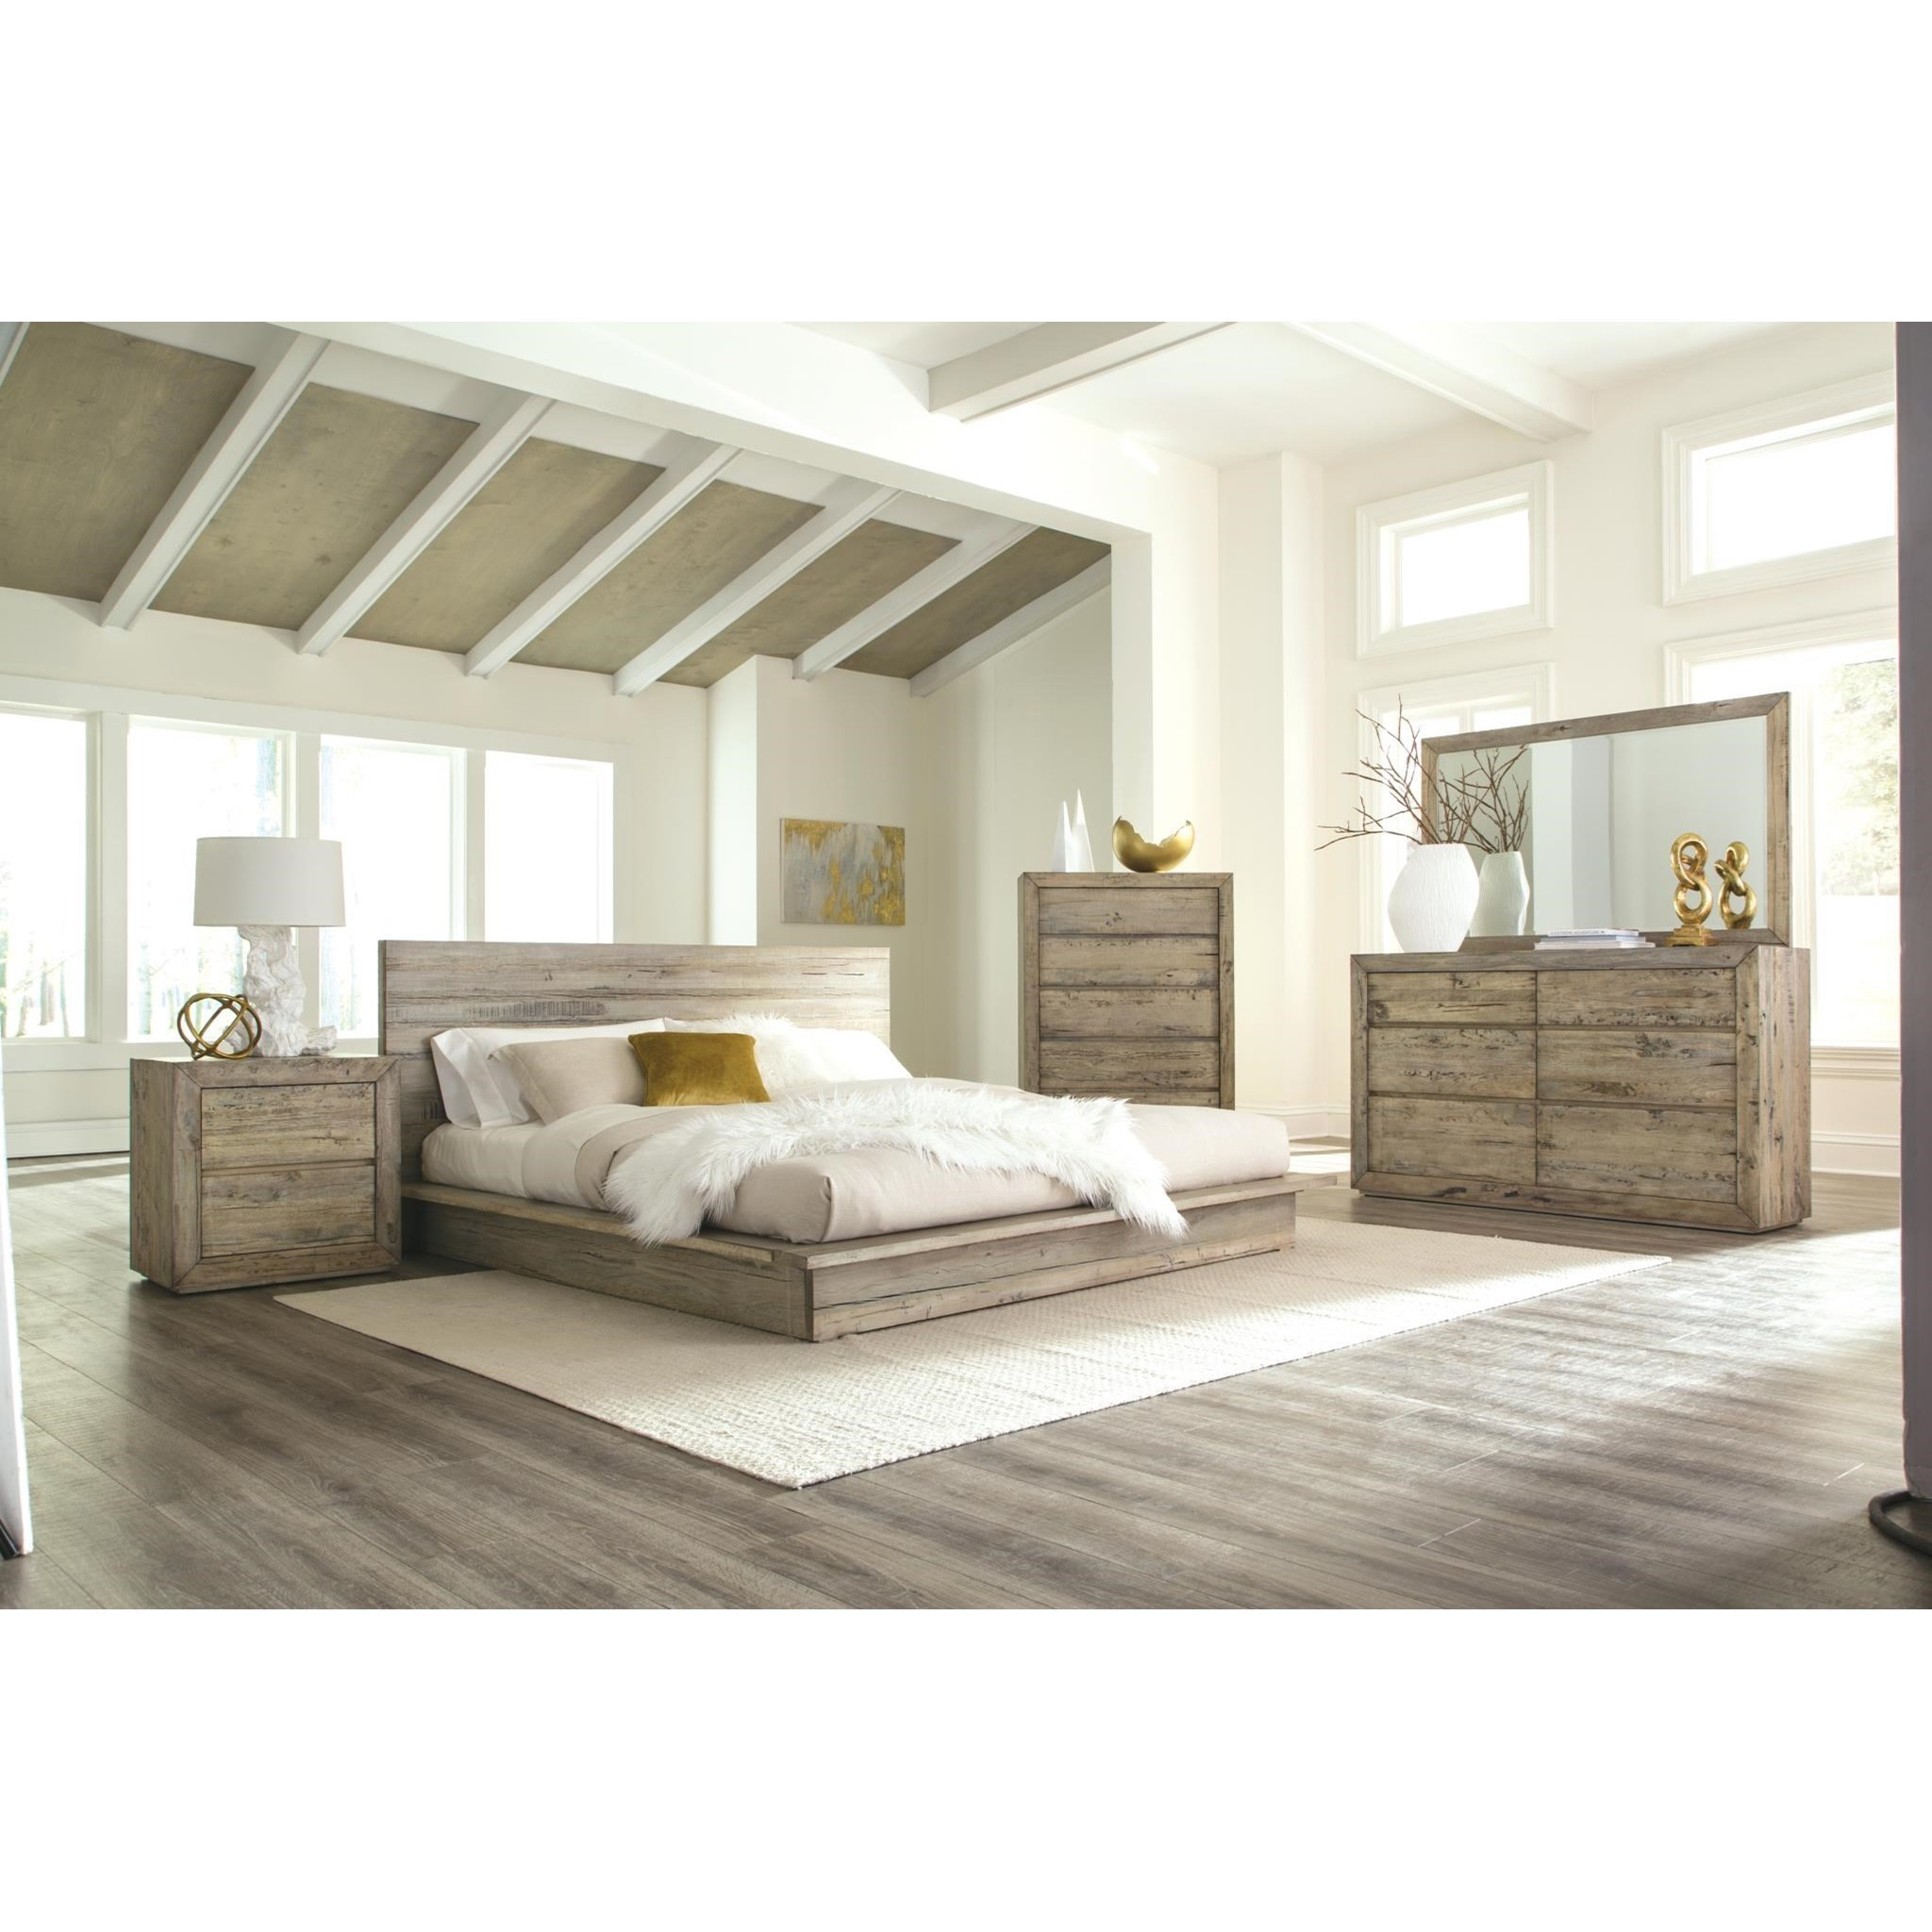 Difference Between King And Queen Bed Napa Furniture Designs Renewal Queen Bedroom Group